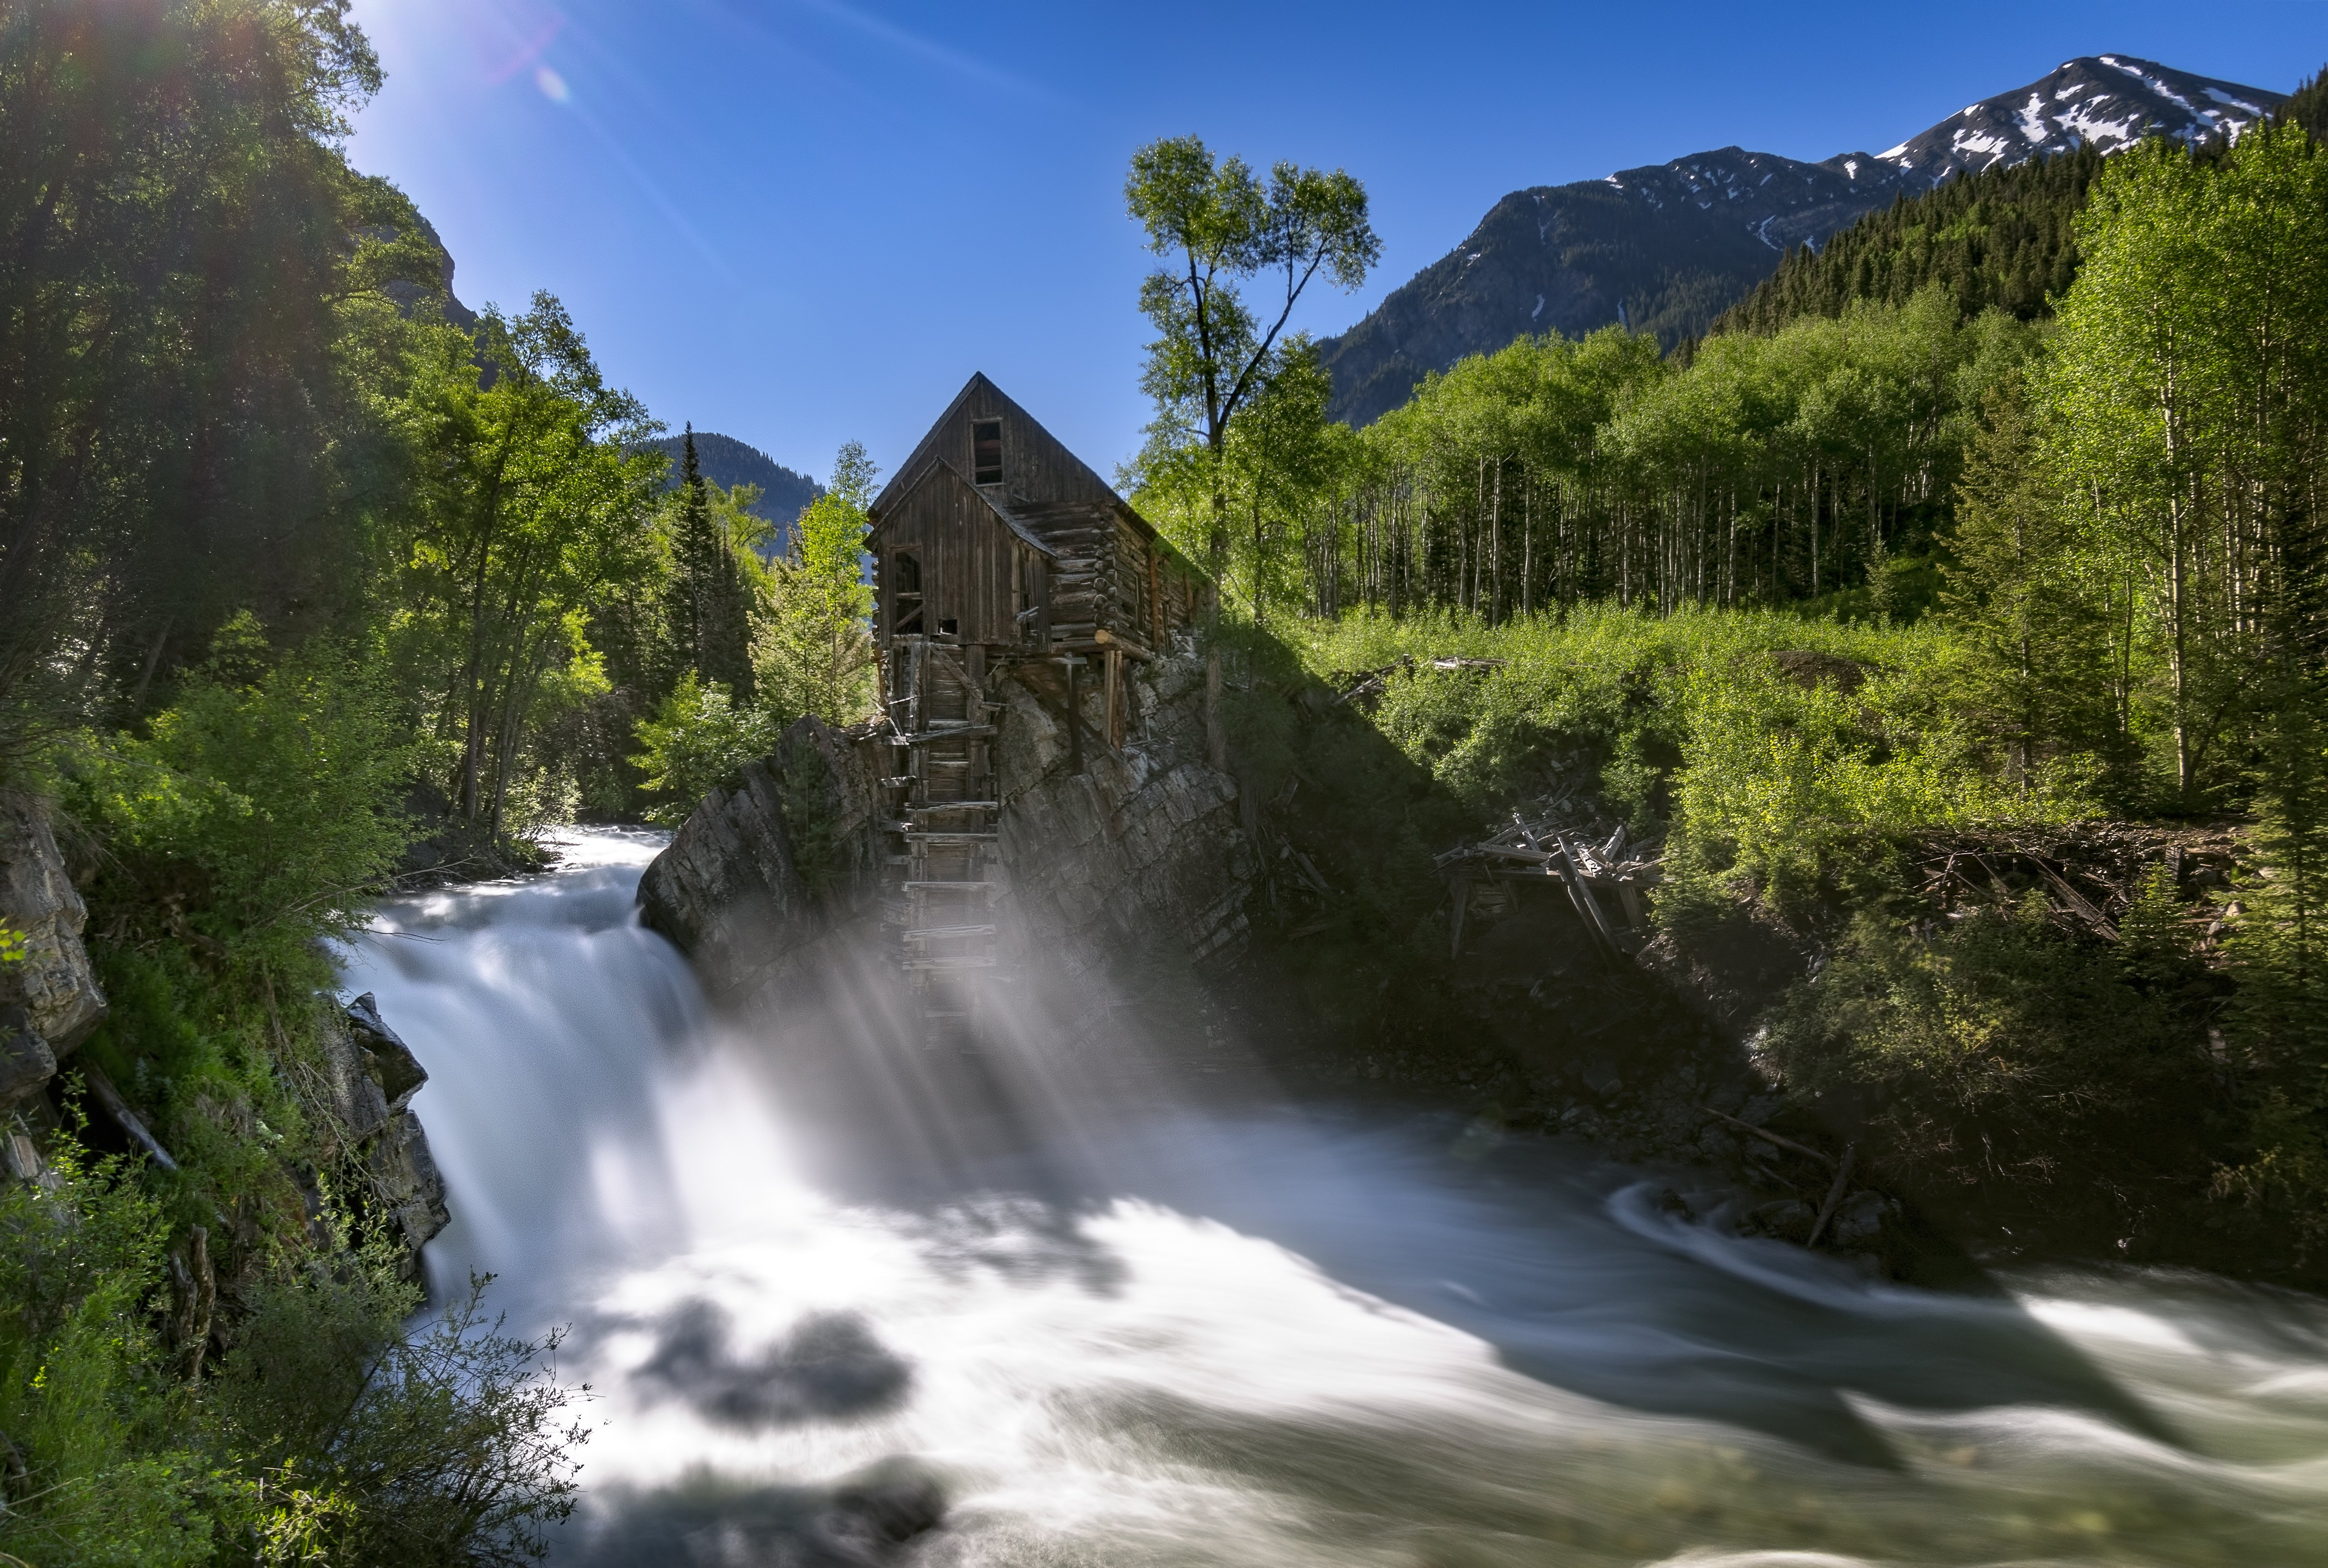 Crystal Mill photographed by Kevin Wenning for Intentionally Lost cycling tour and photography workshop #intentionallylost